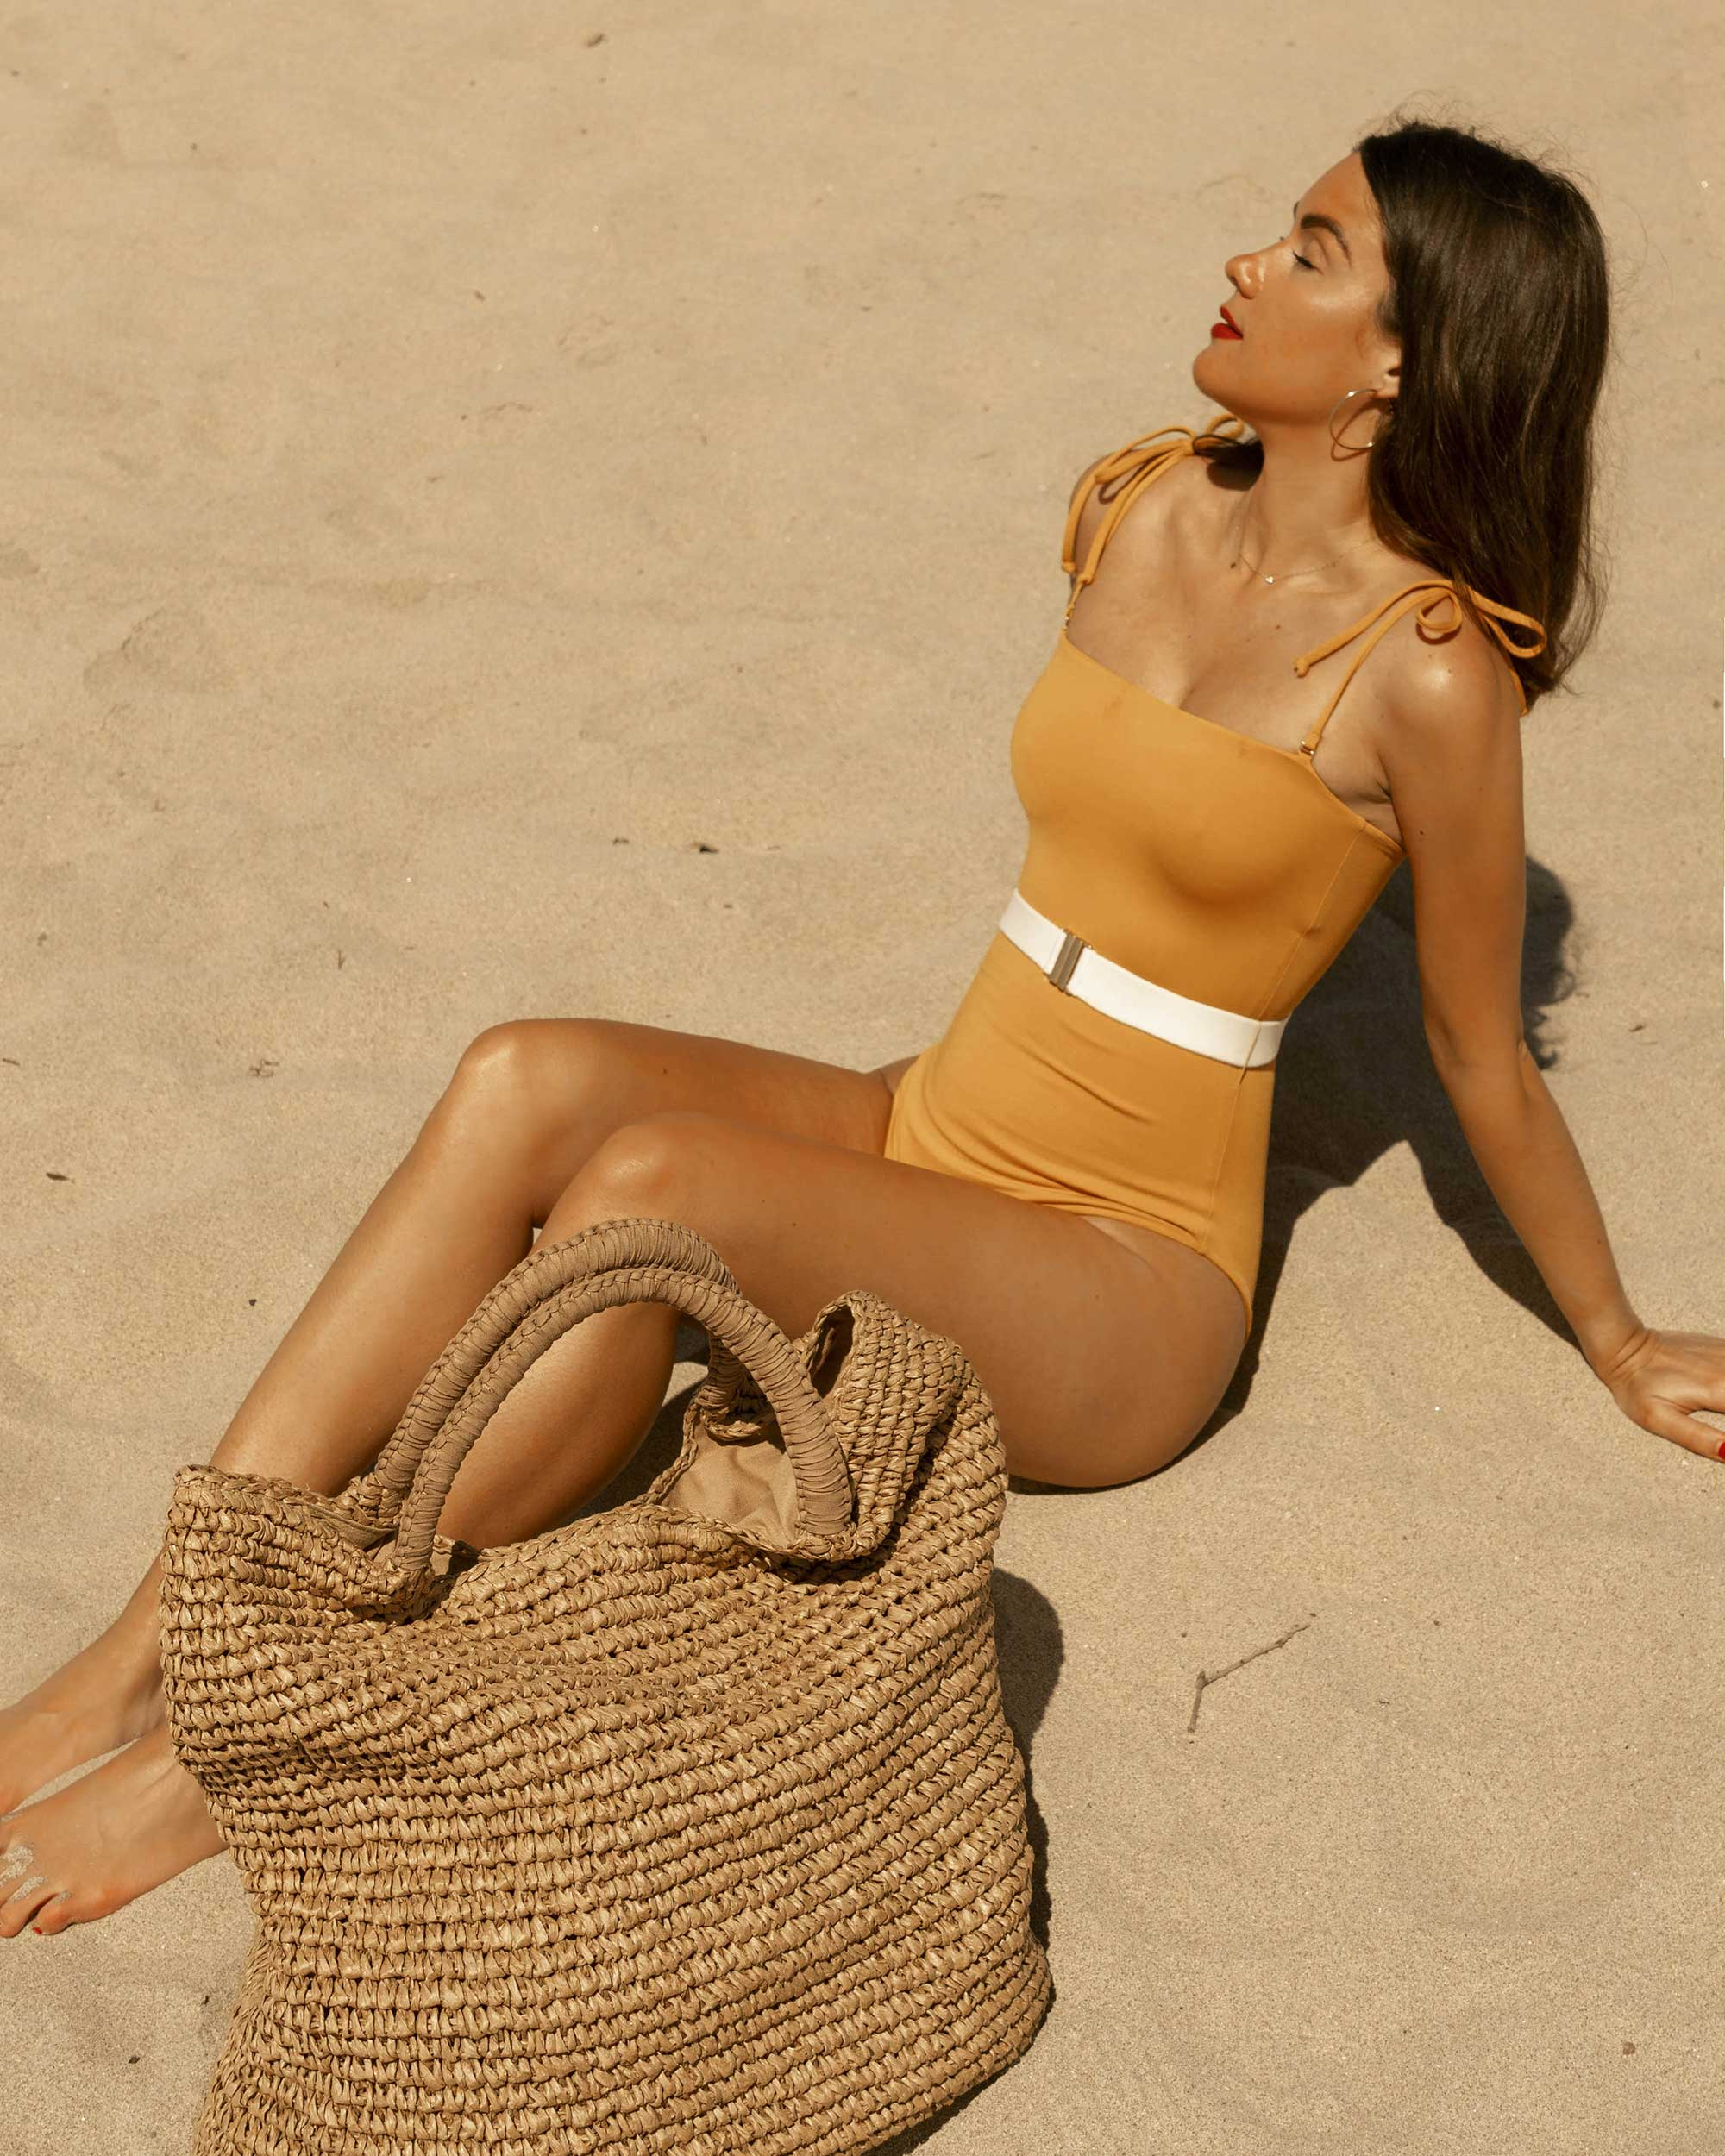 Sarah Butler of Sarah Styles Seattle LSpace Yellow One Piece Swimsuit with belt and Fallon & Royce Mel Straw Oversize Straw Tote Beach Bag in Newport Beach, California for the perfect beach outfit  | @sarahchristine -5.jpg